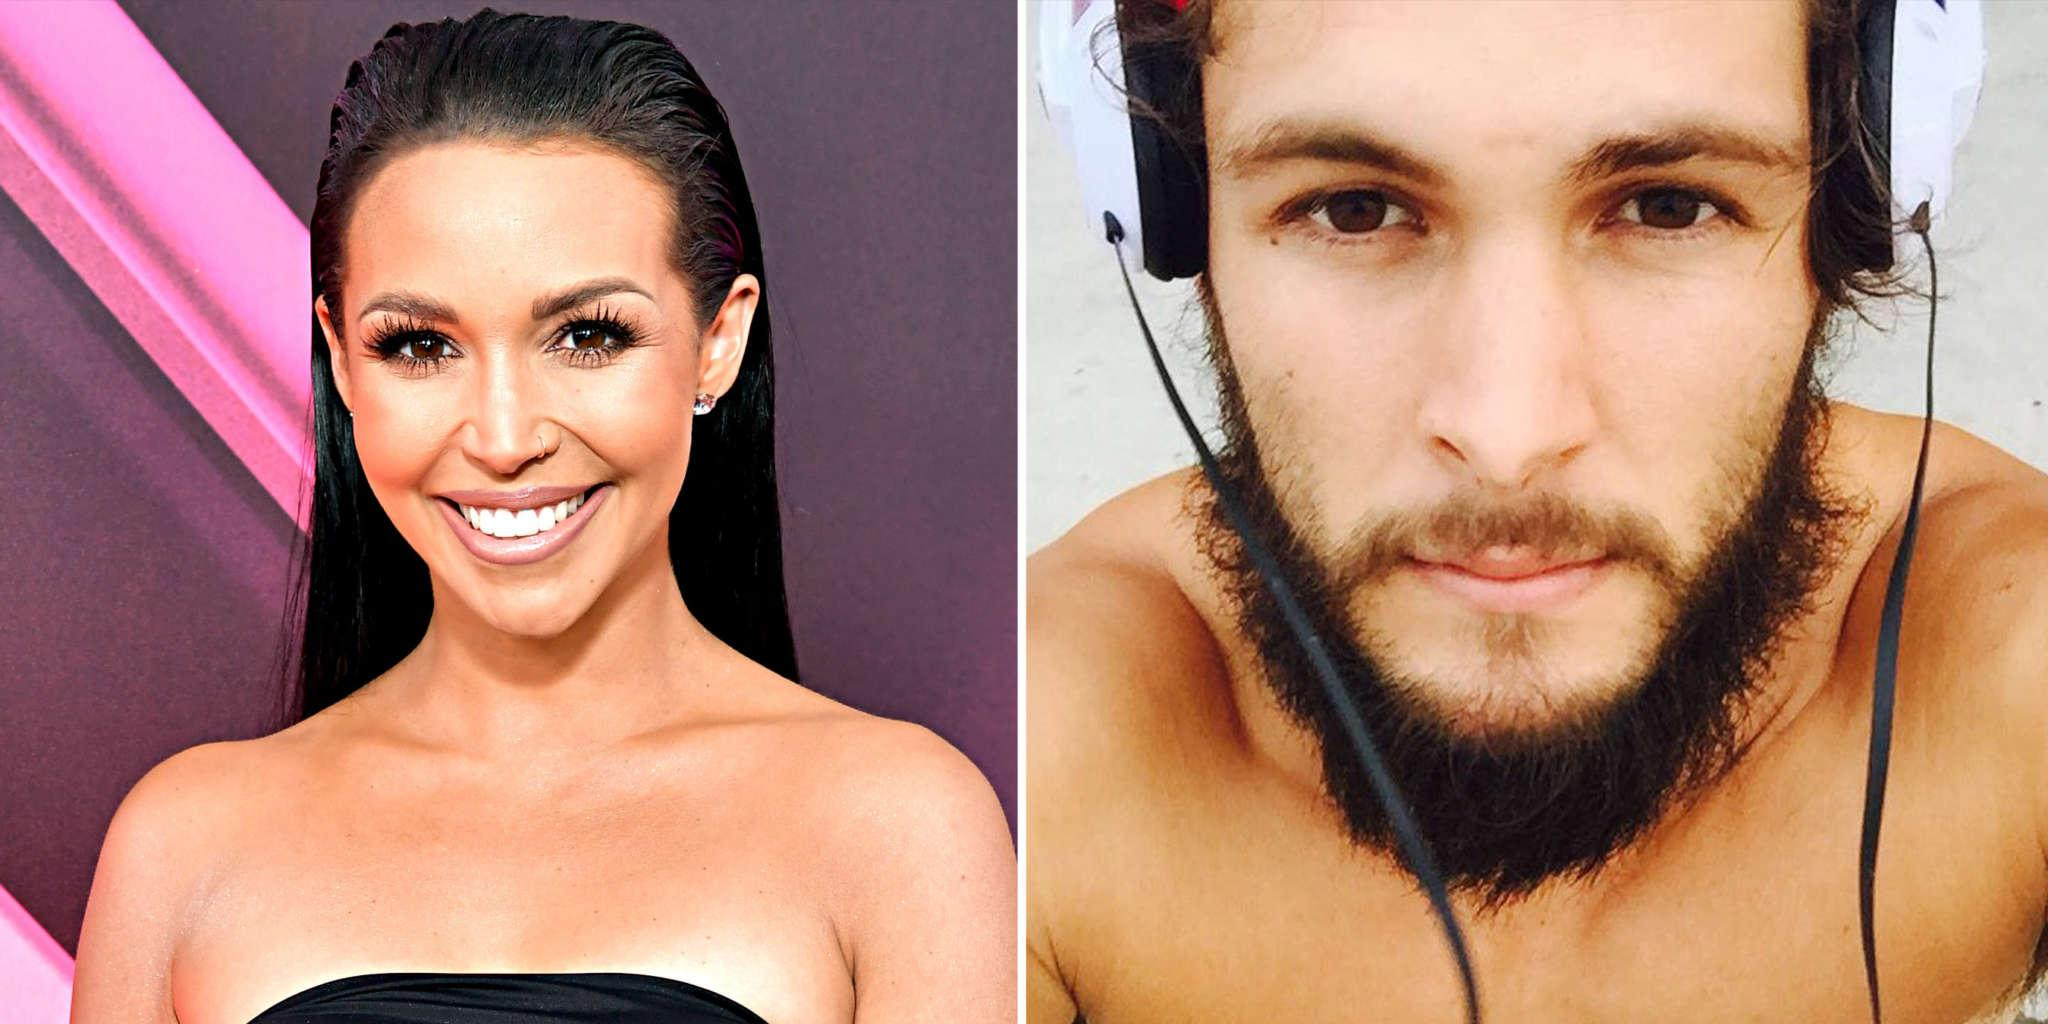 Scheana Shay Gushes Over Her New Boyfriend - Says She Thinks He's 'The One!'